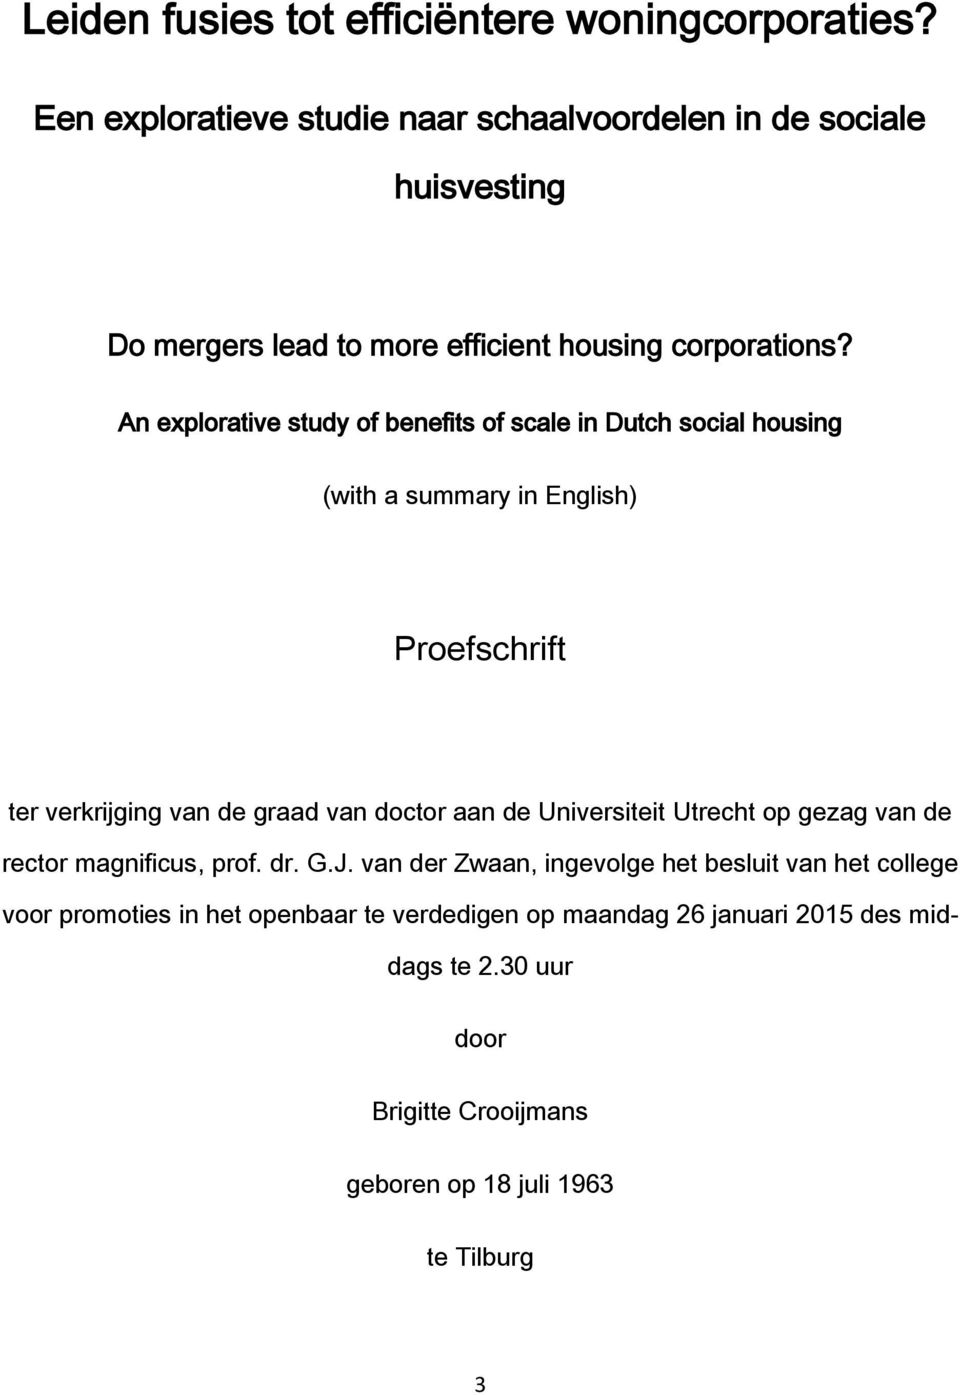 An explorative study of benefits of scale in Dutch social housing (with a summary in English) Proefschrift ter verkrijging van de graad van doctor aan